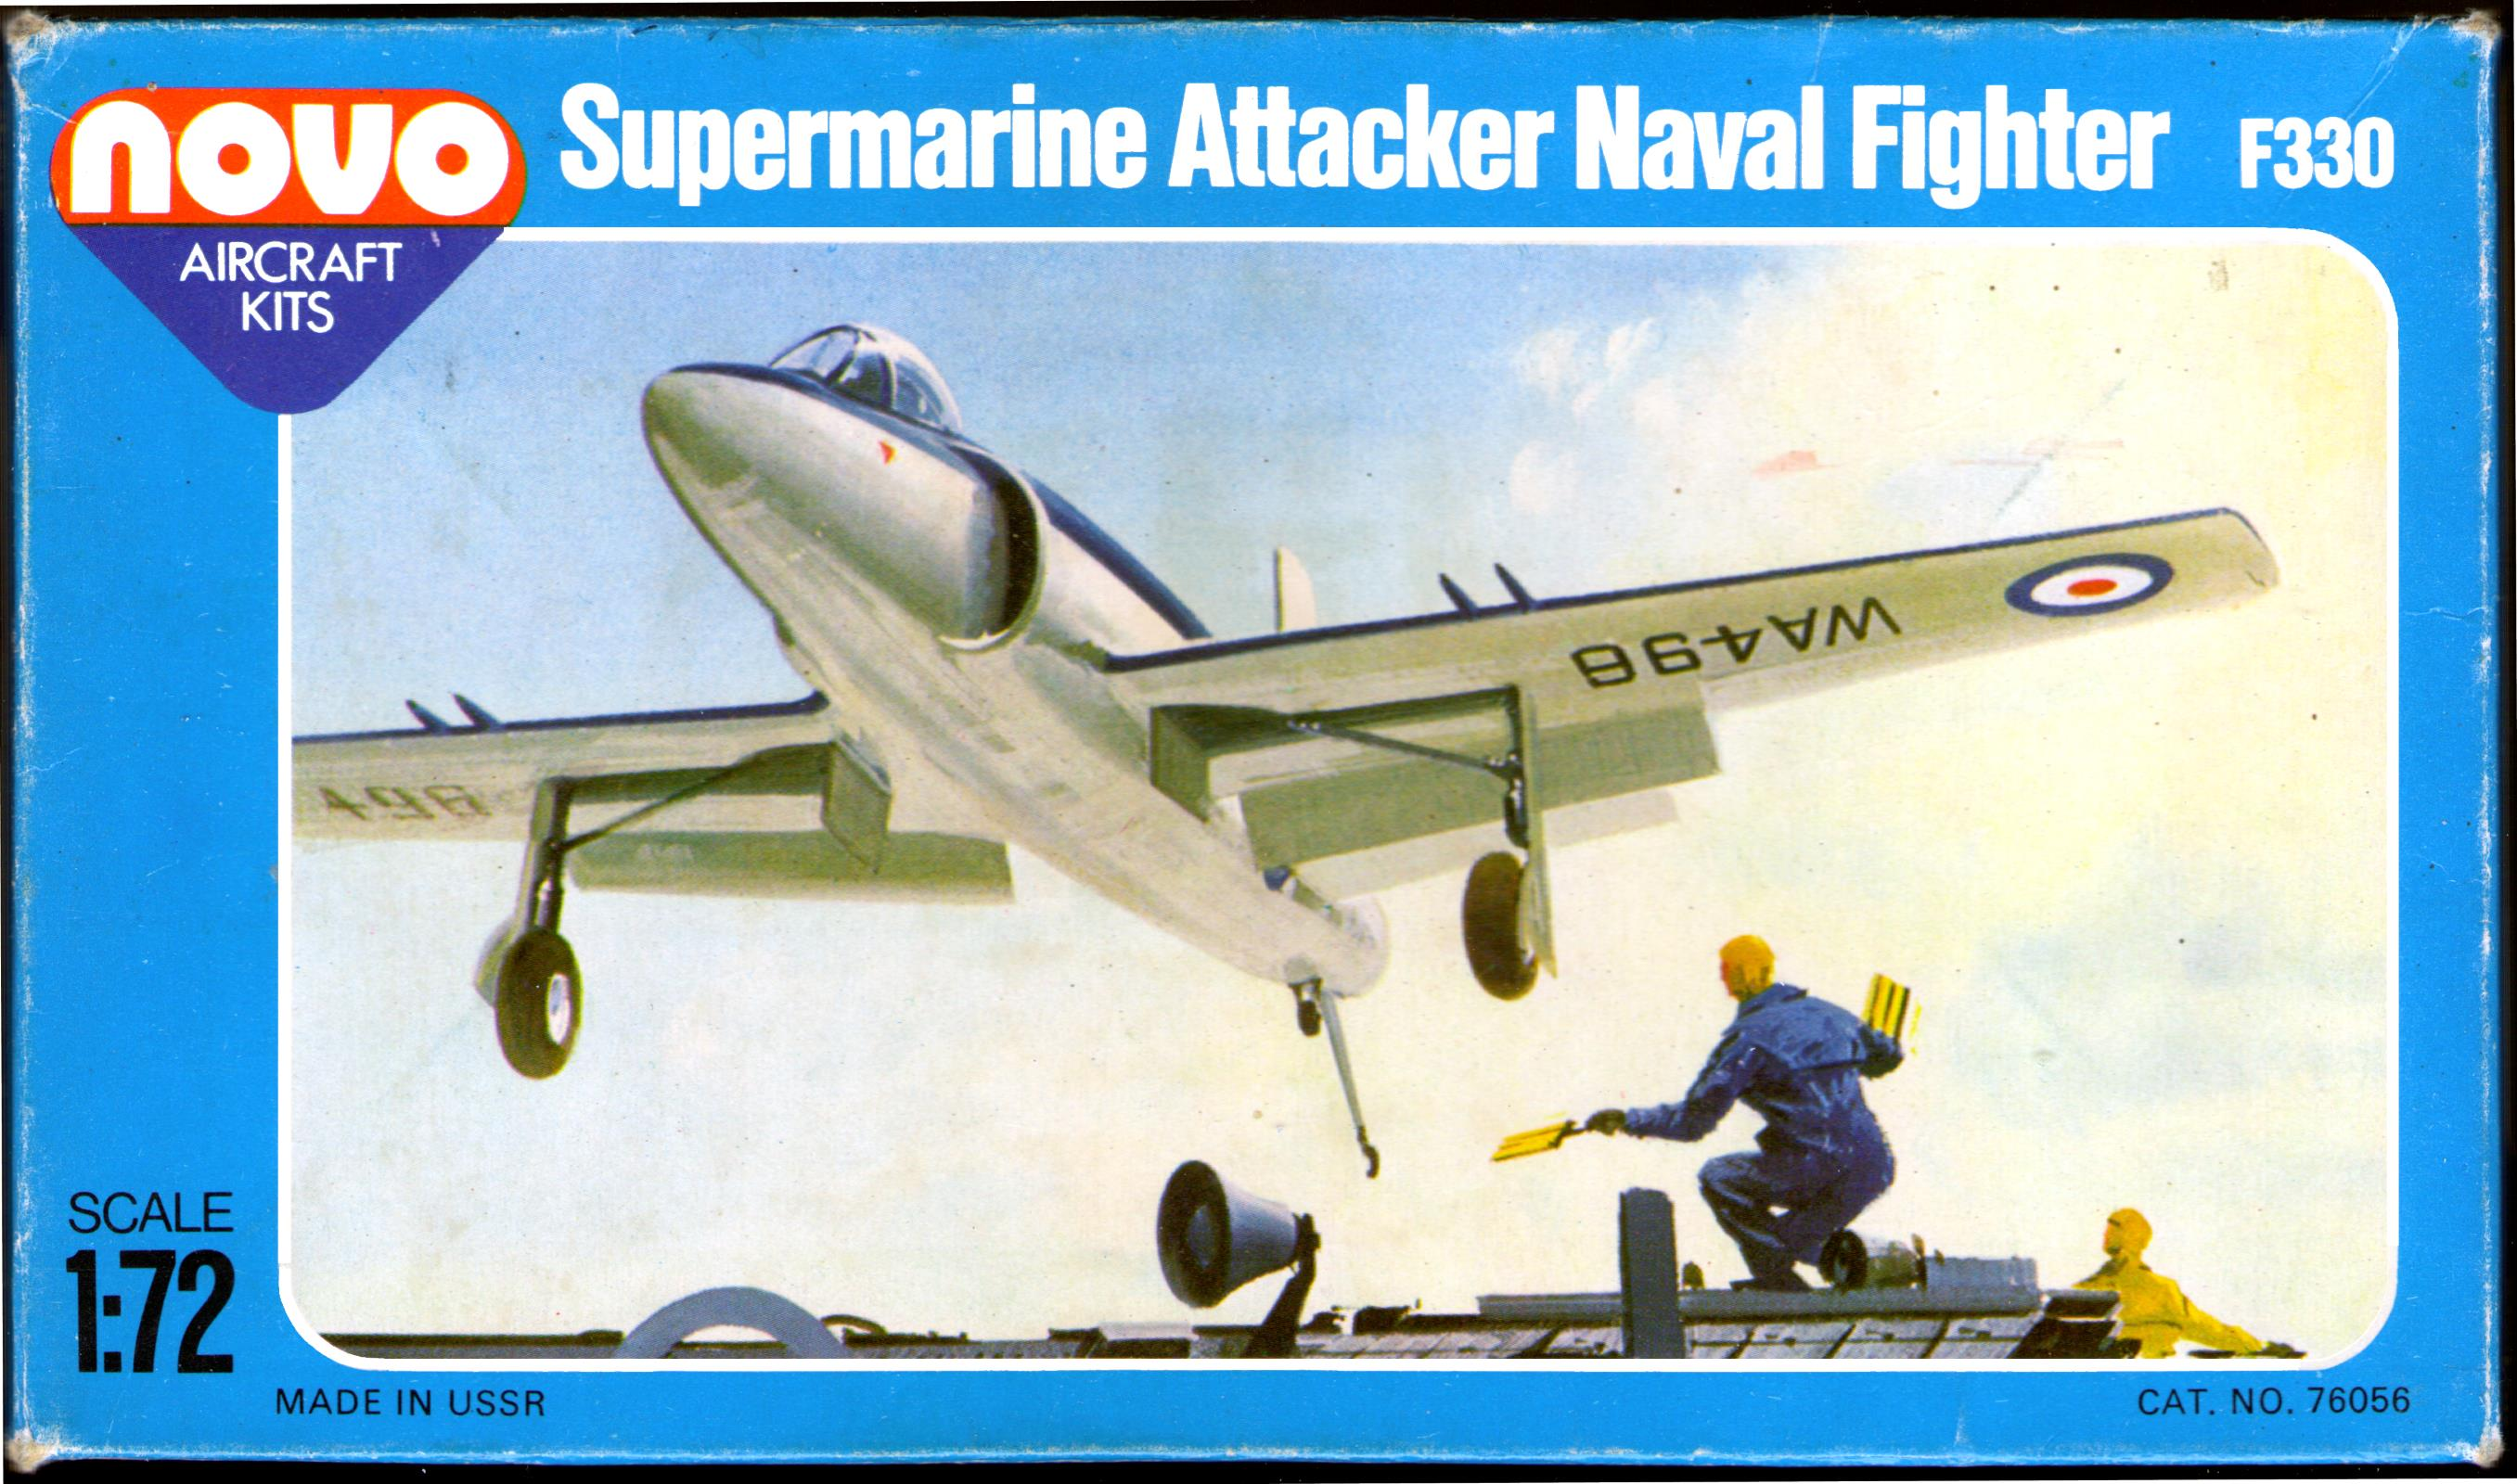 Верх коробки NOVO Toys Ltd F330 Supermarine Attacker, 155000 шт